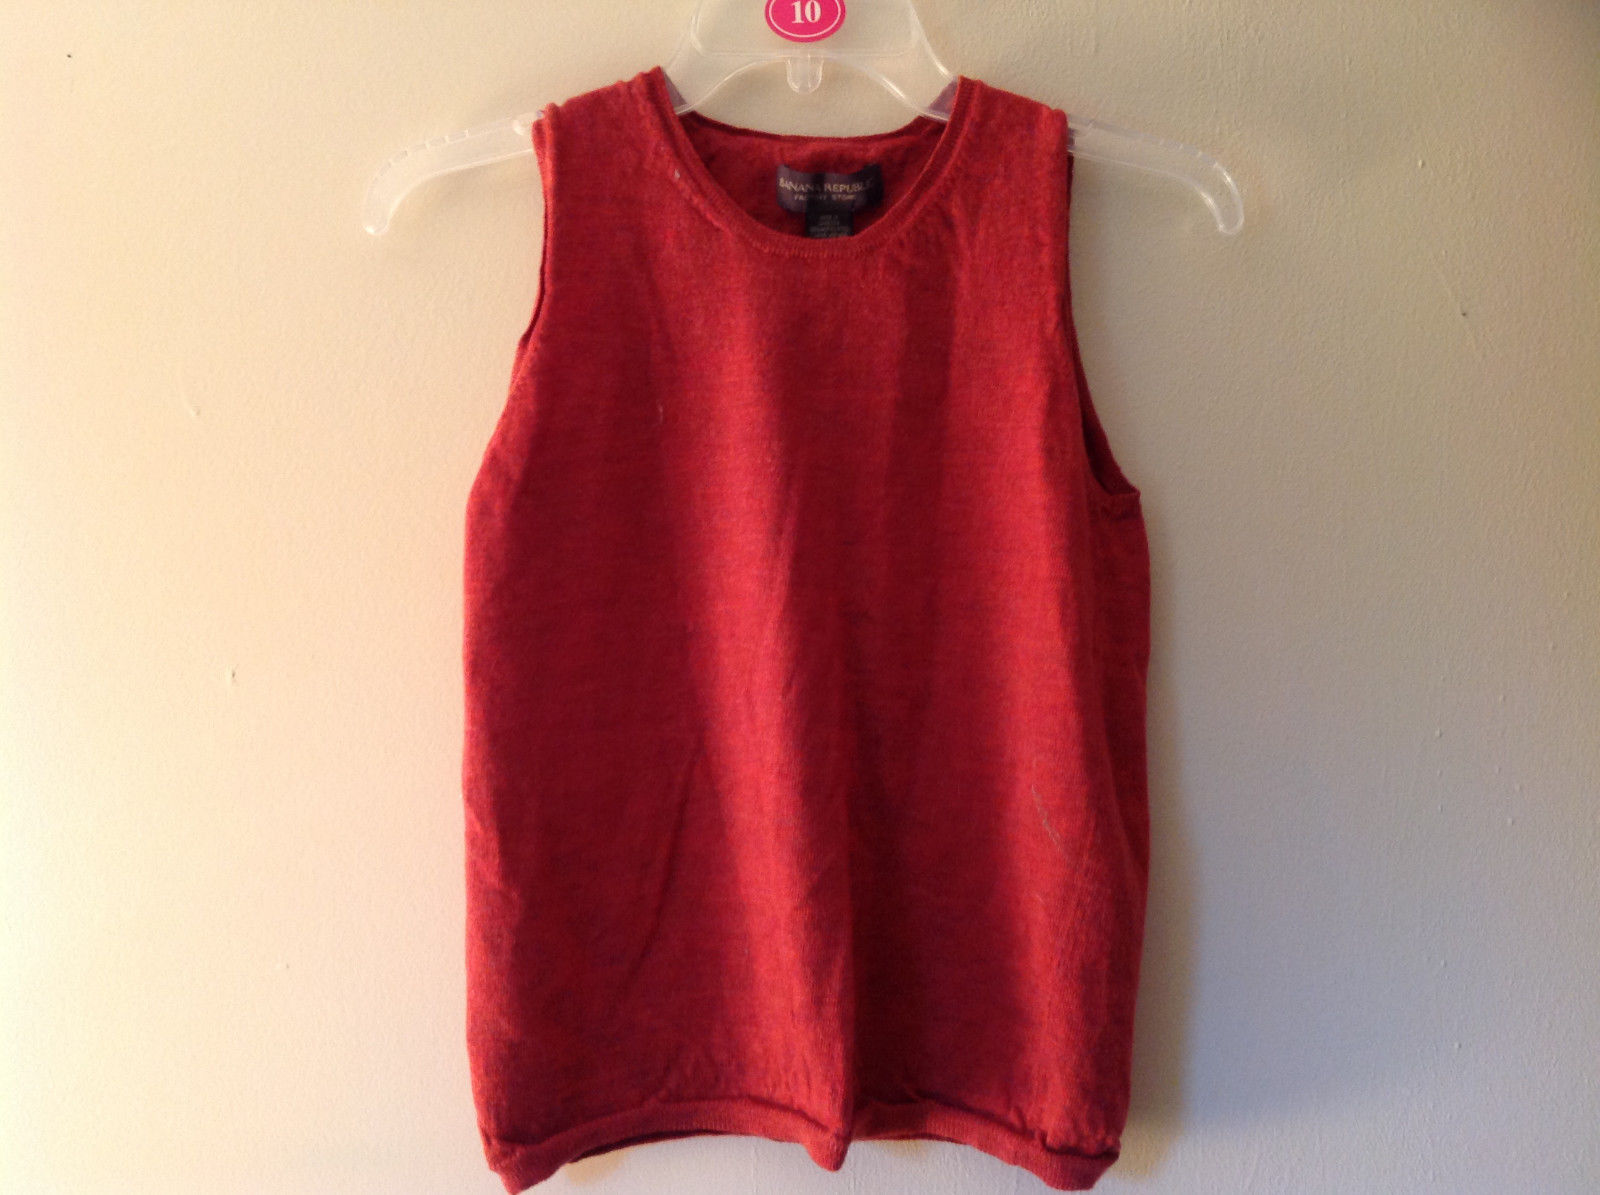 Banana Republic Red Orange Crew Neck Sweater Vest Stretchy Material Size Large